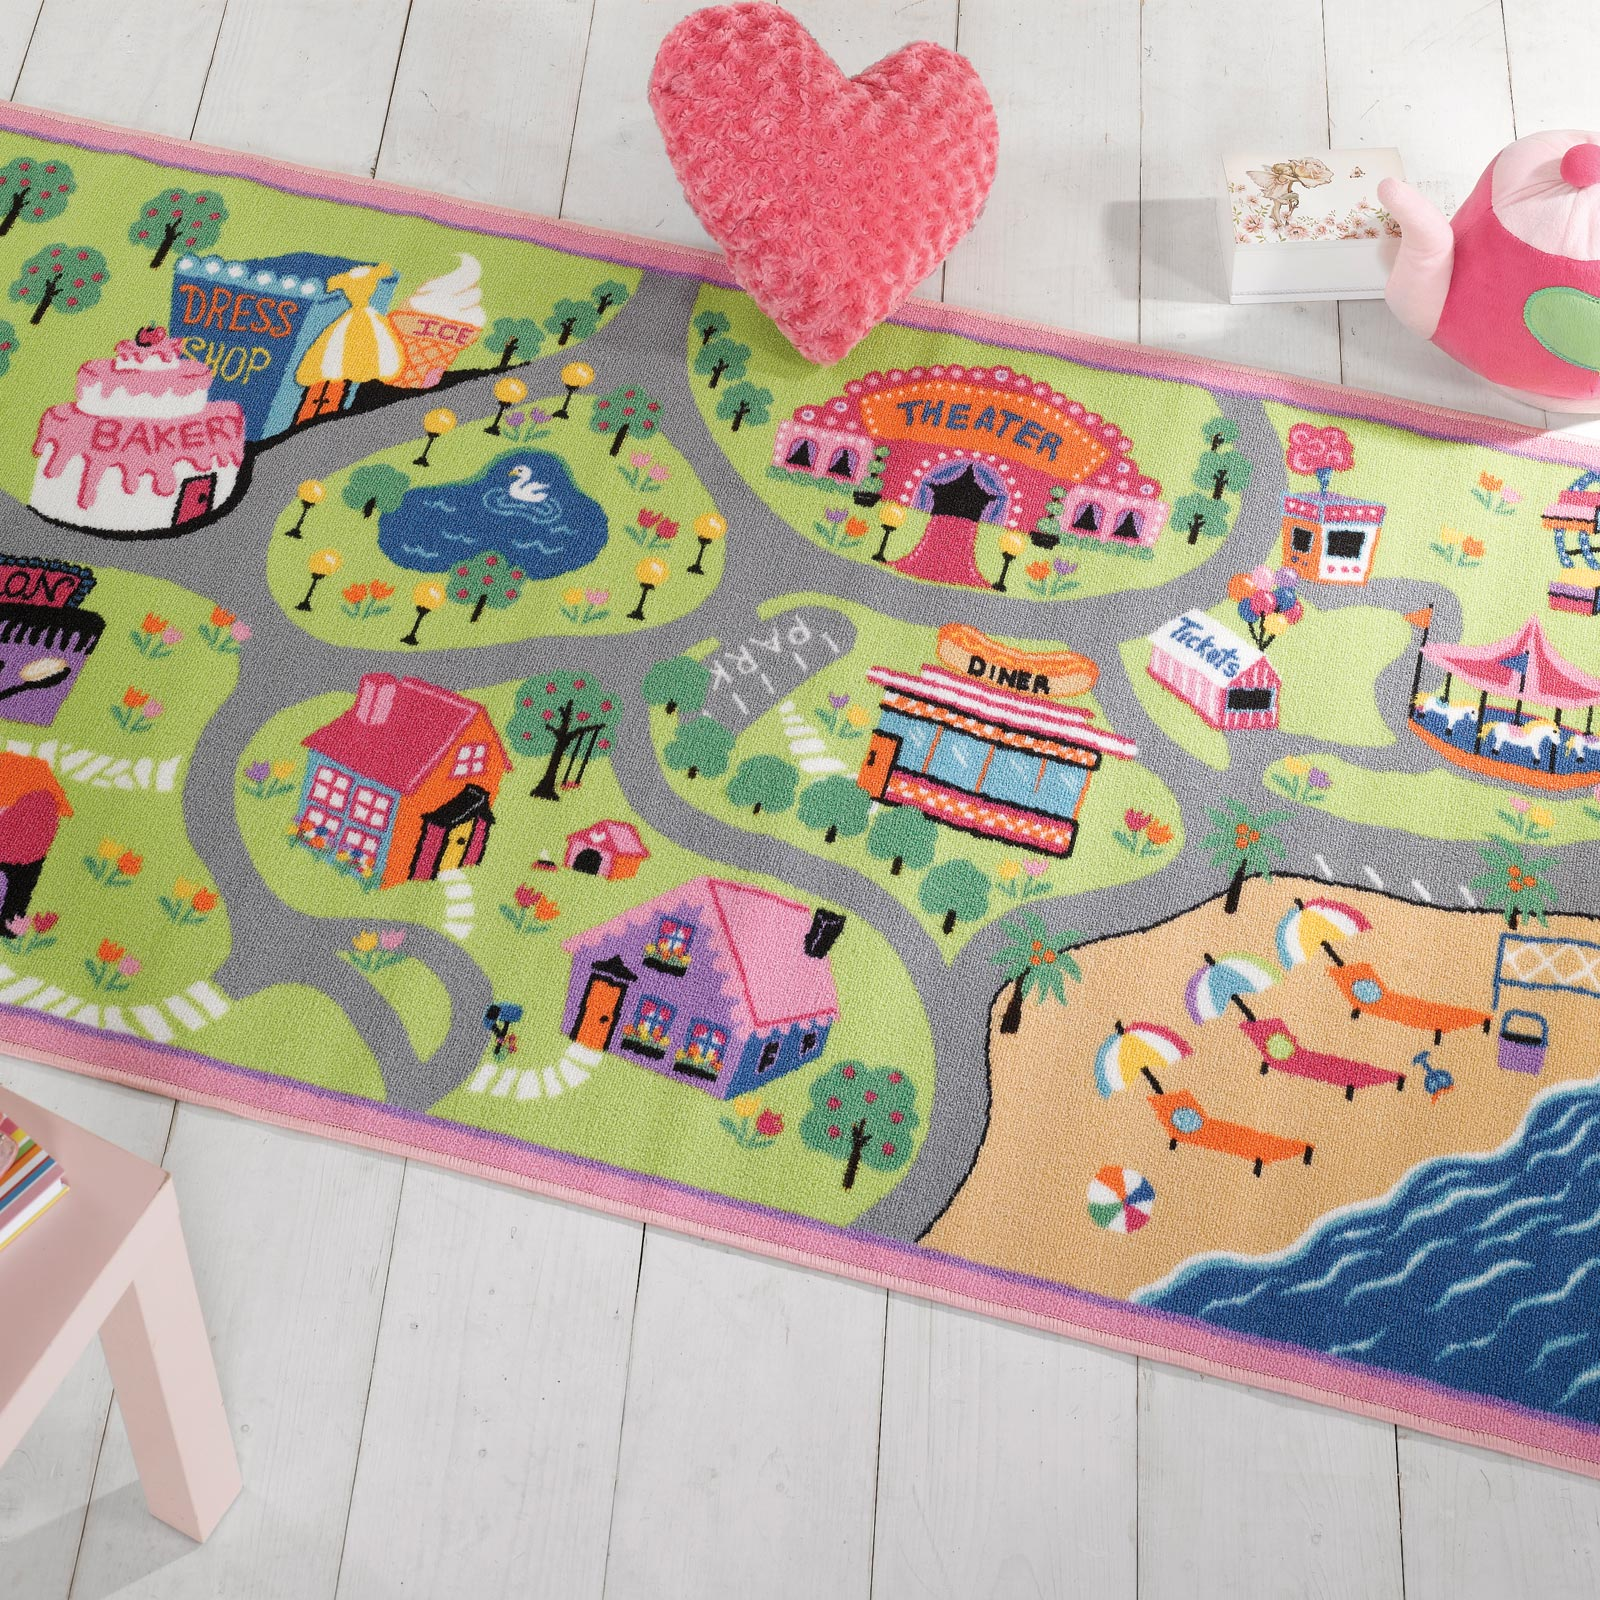 road witching roads ga children street map learning shapely carpet kinderloom lightbox get kids city playroom carpetplay rug group cheap sleek moreview rugs alphabet alibaba mat then play